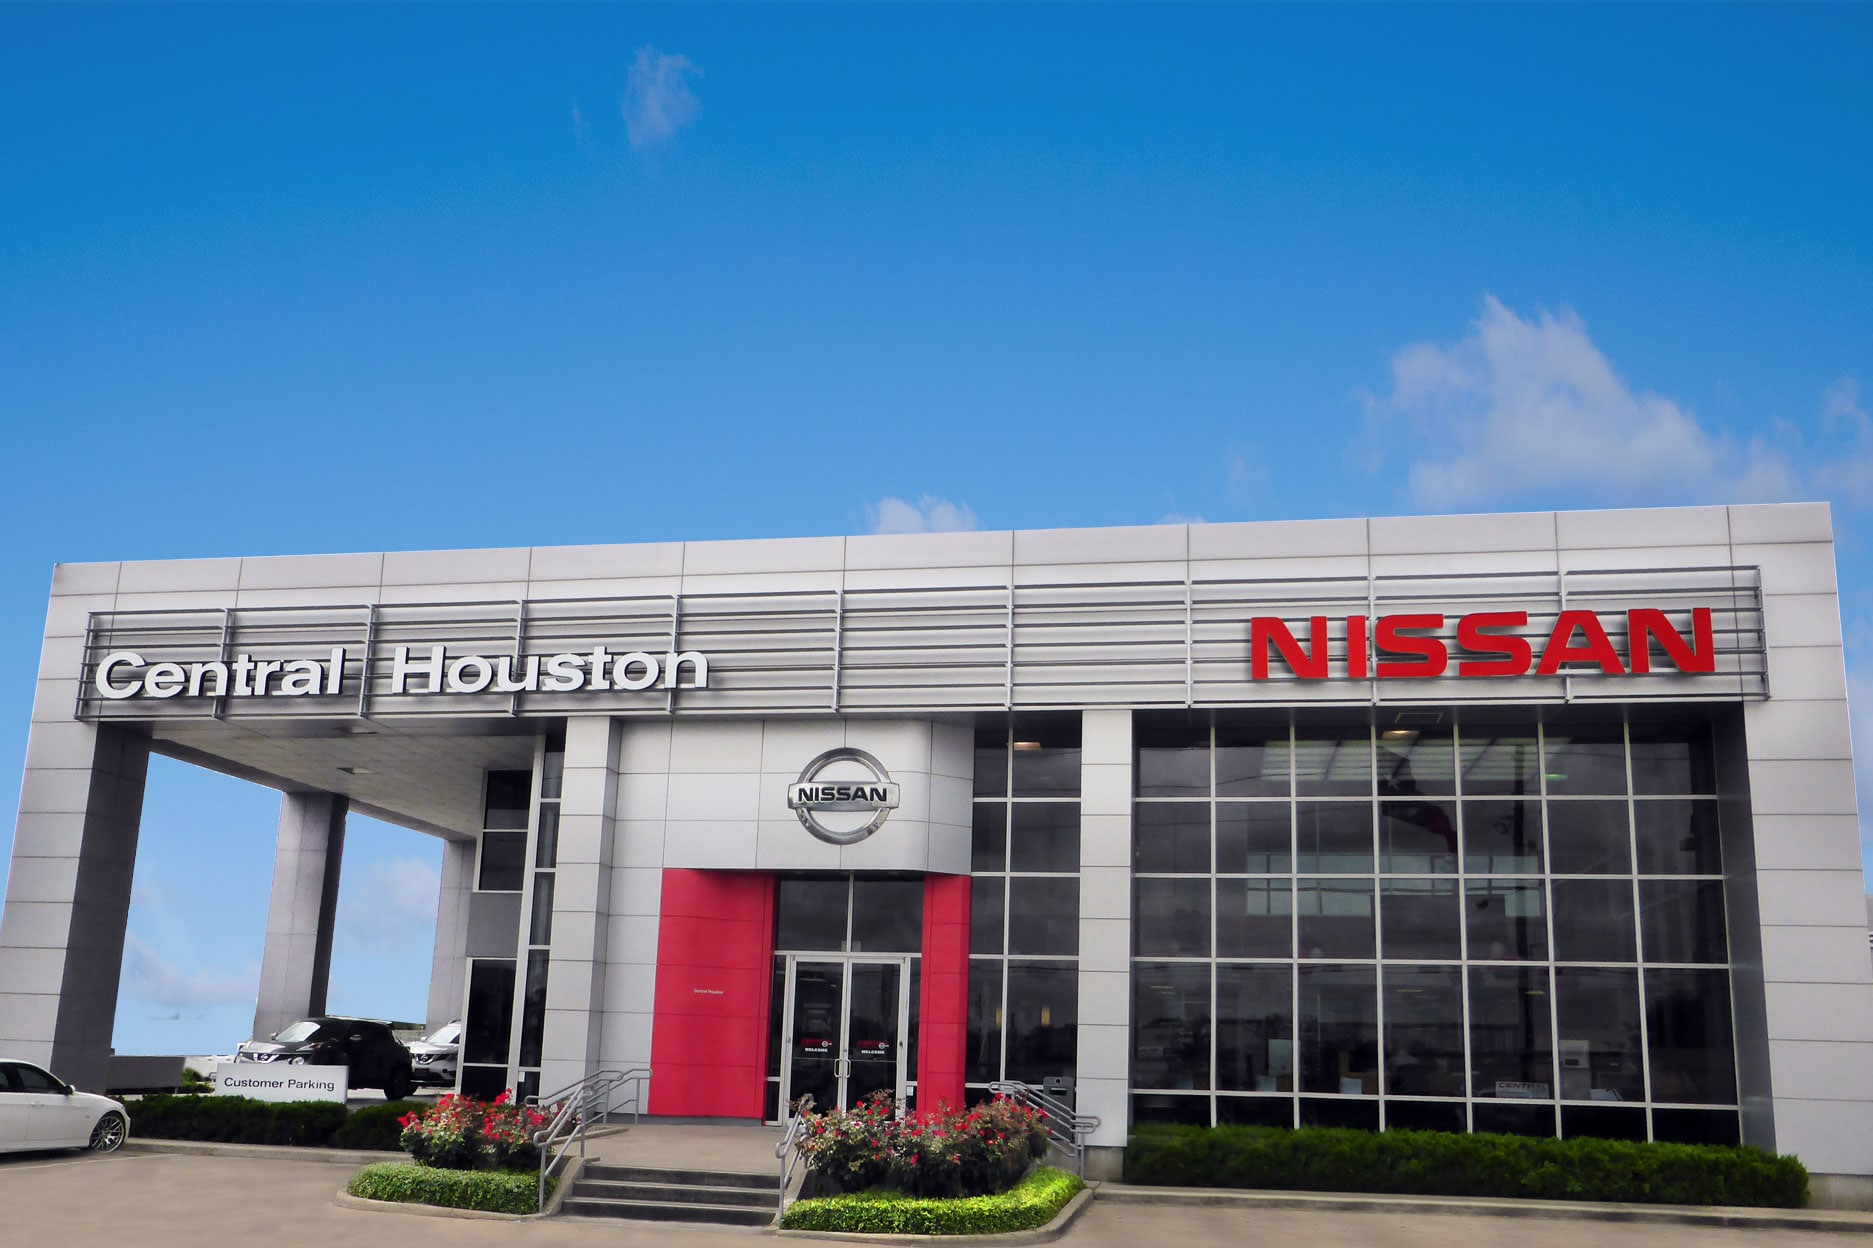 Central Houston Nissan | Nissan Dealer in Houston, TX